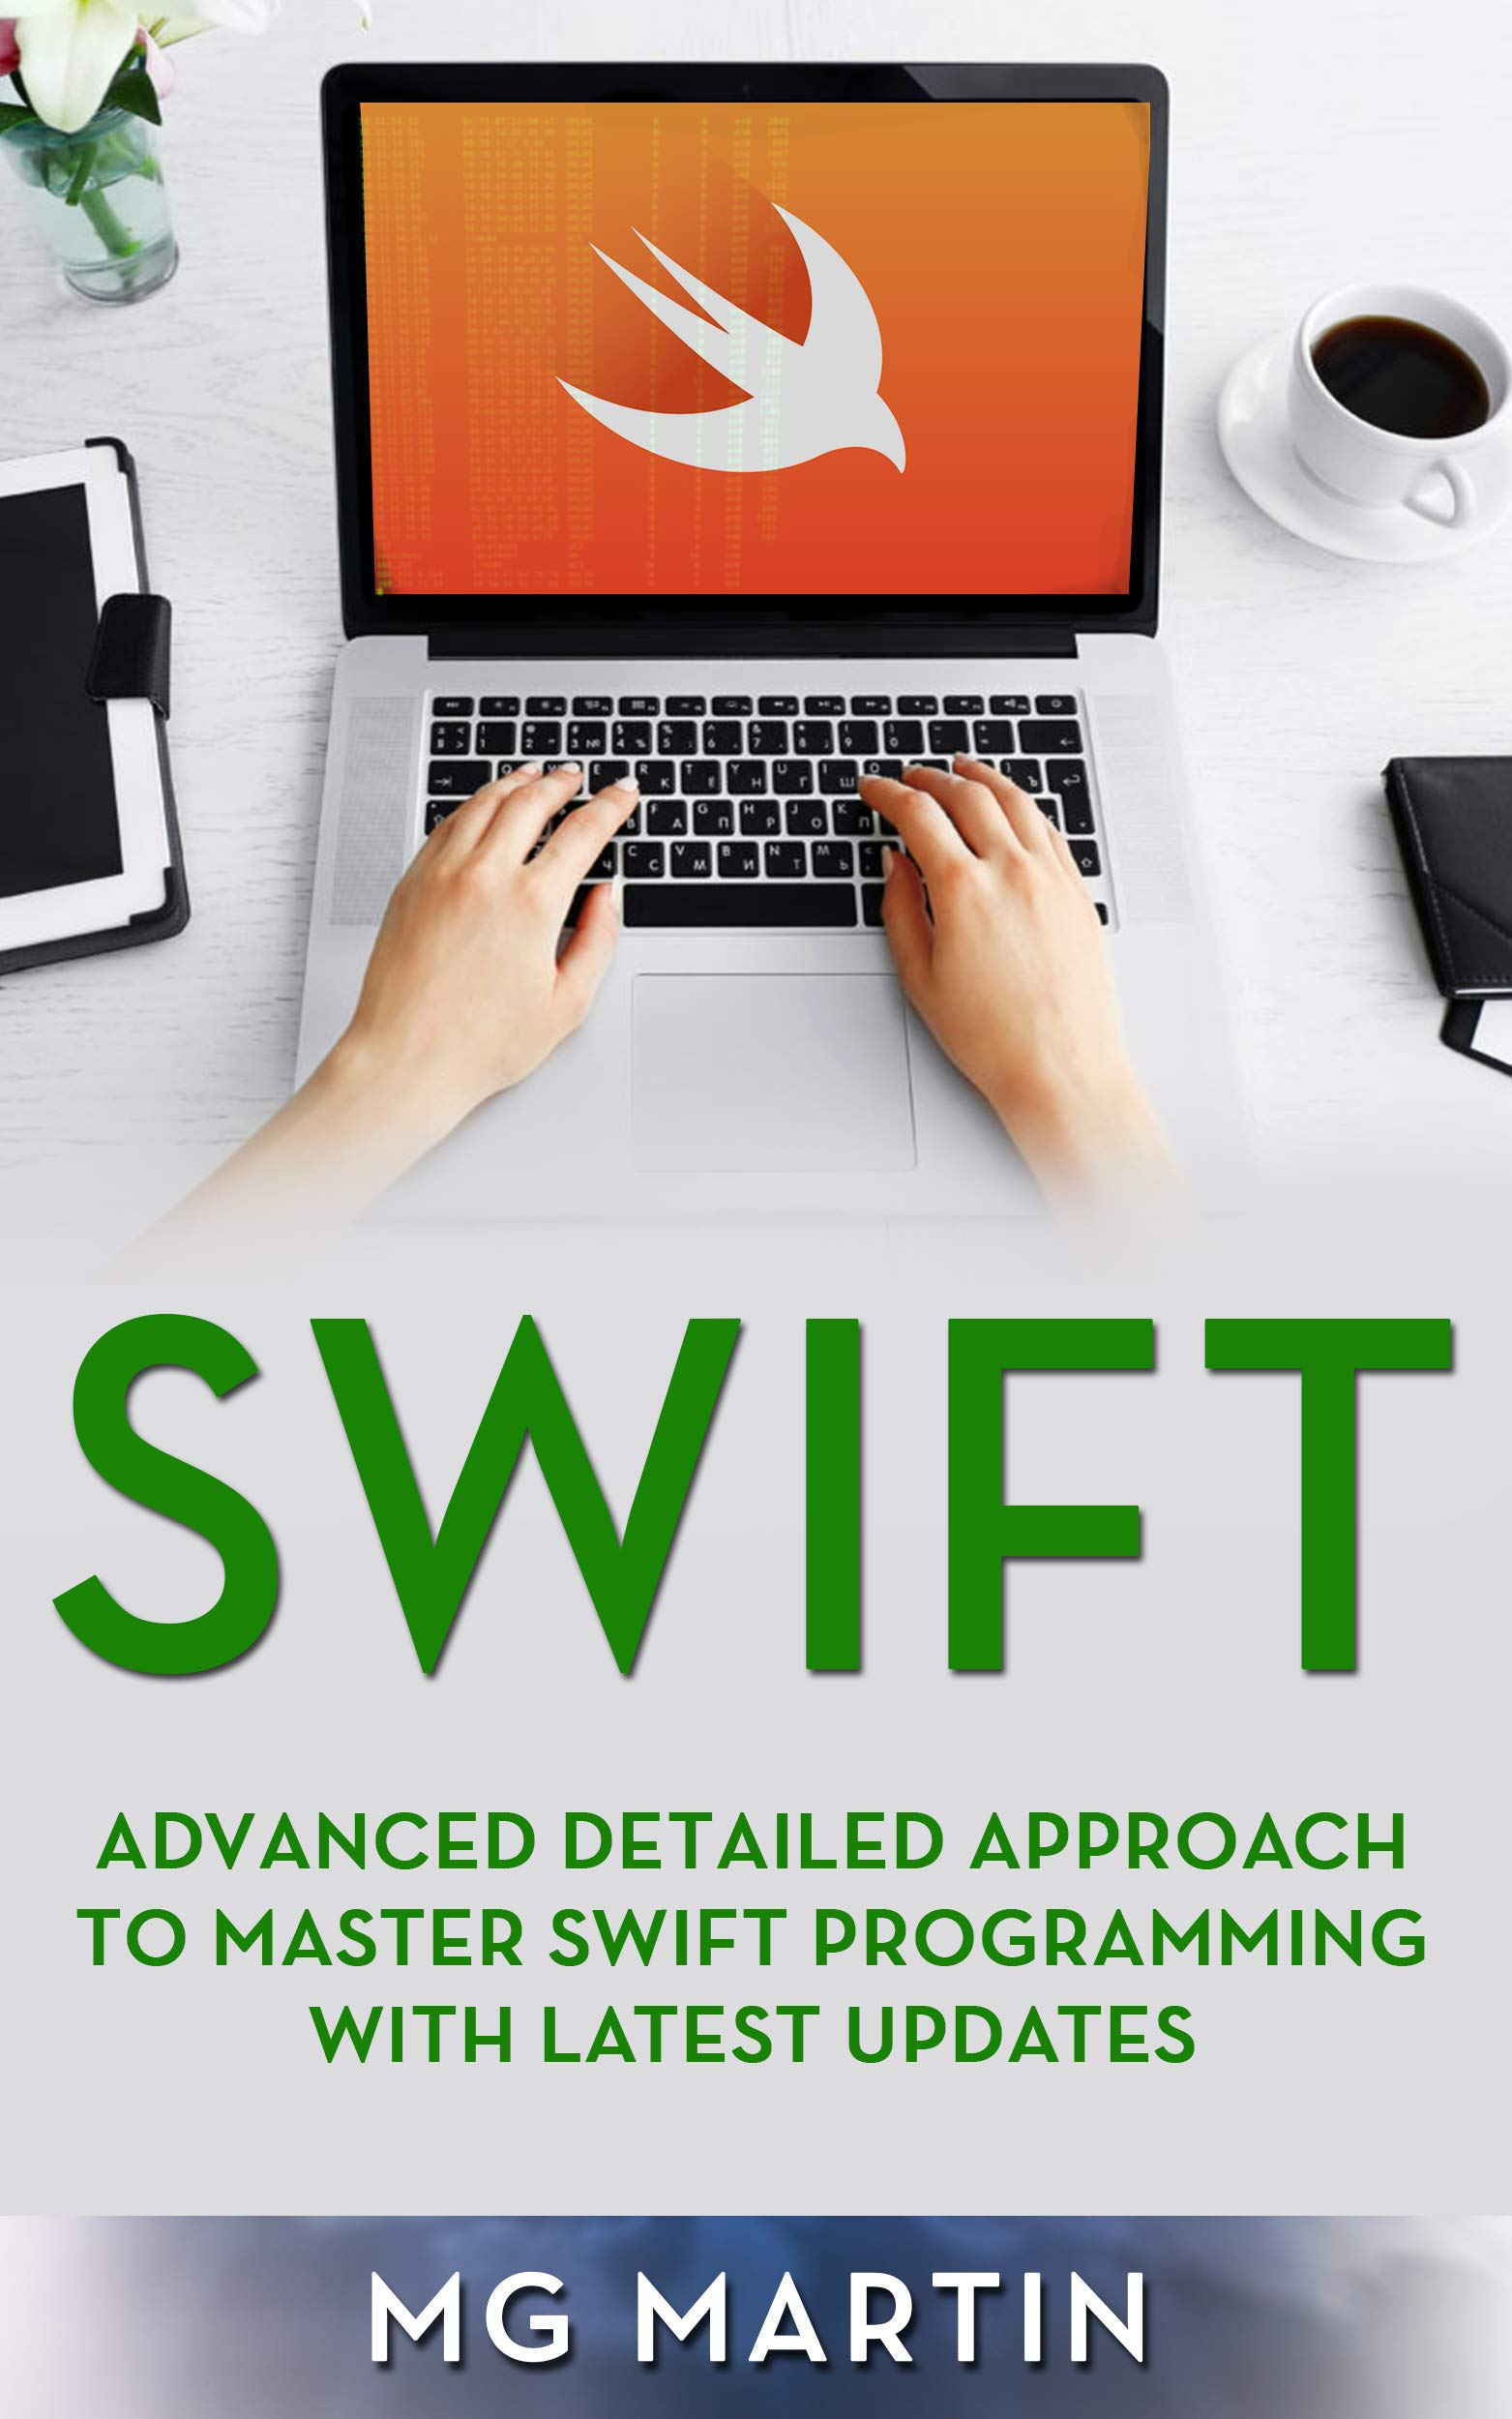 Swift: Advanced Detailed Approach To Master Swift Programming With Latest Updates